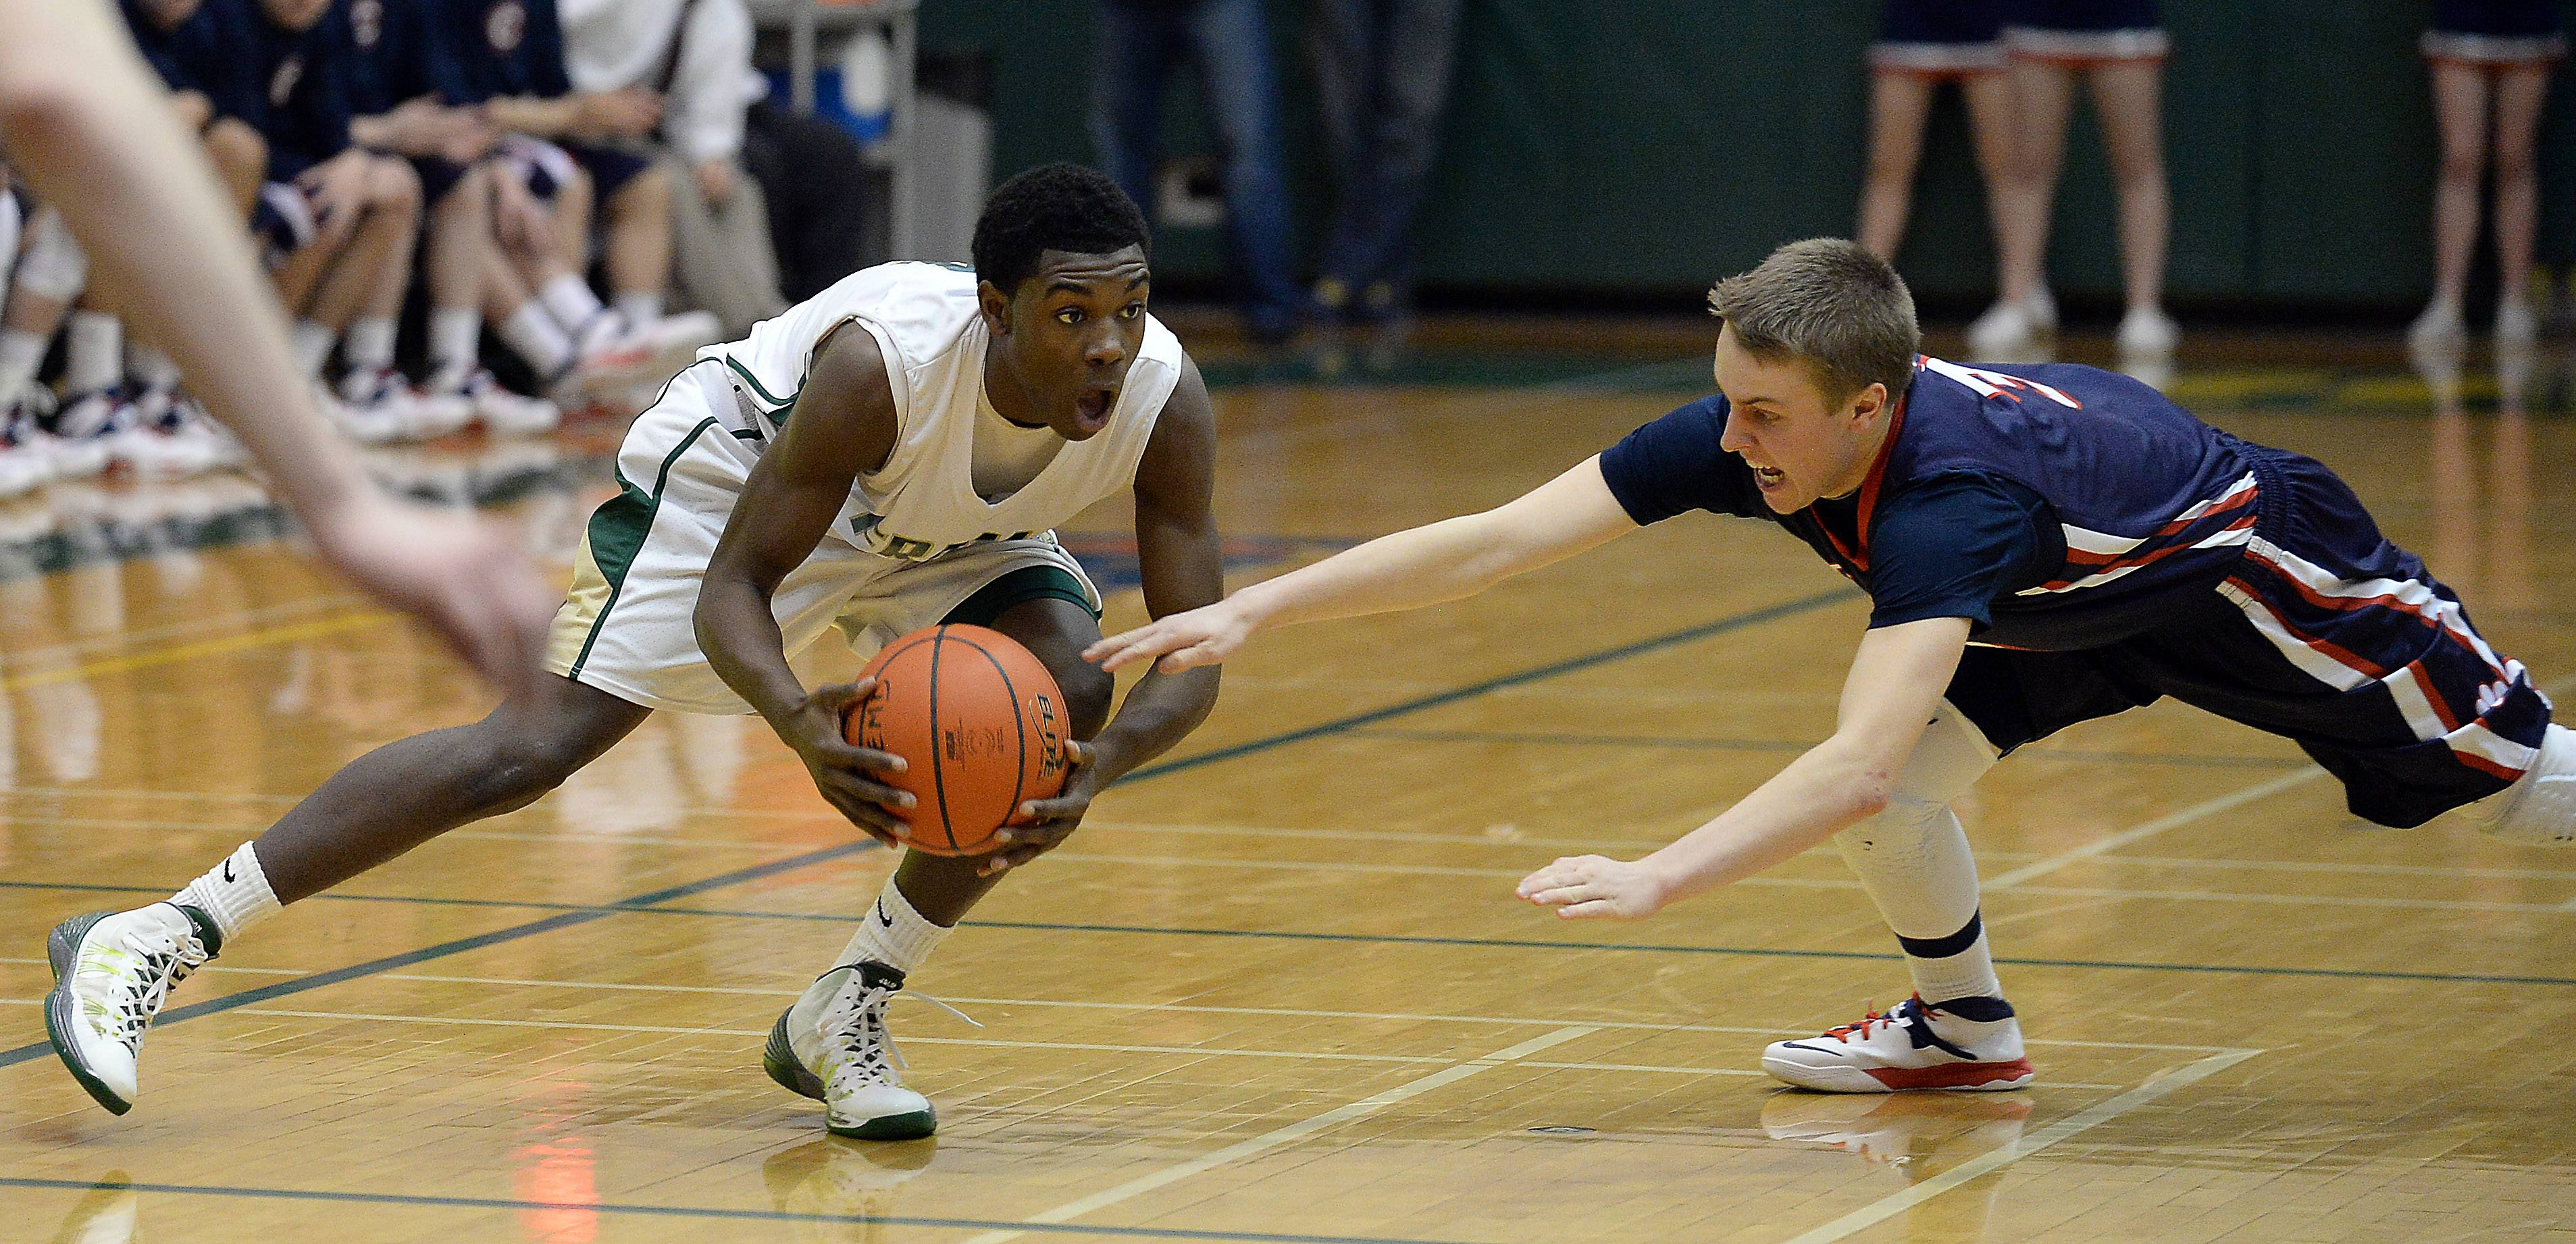 Fremd's Jalon Roundy tries to maintain control of the ball as Conant's Kevin Copher comes in and knocks it away.